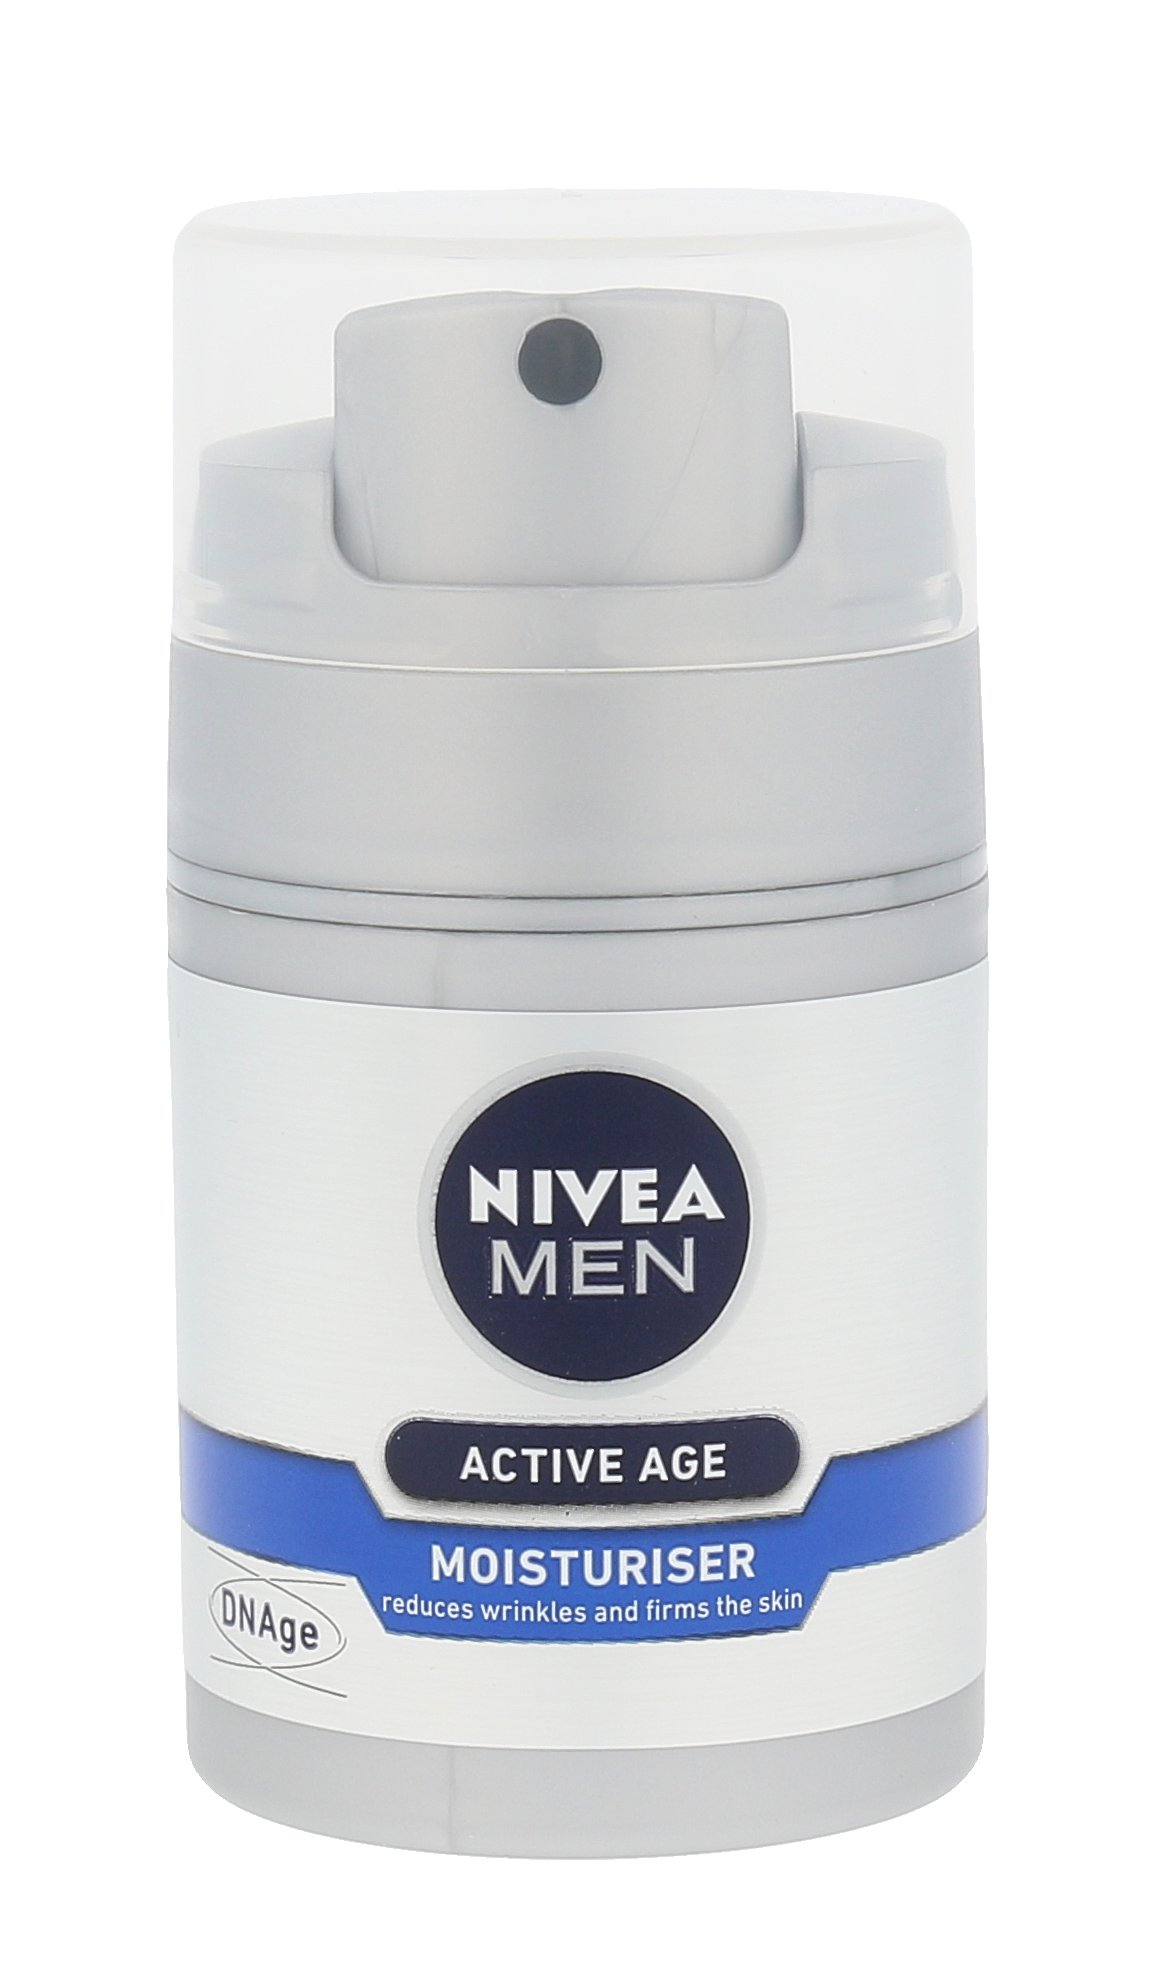 Nivea Men Active Age Moisturiser, Denný arcápoló cream 50ml